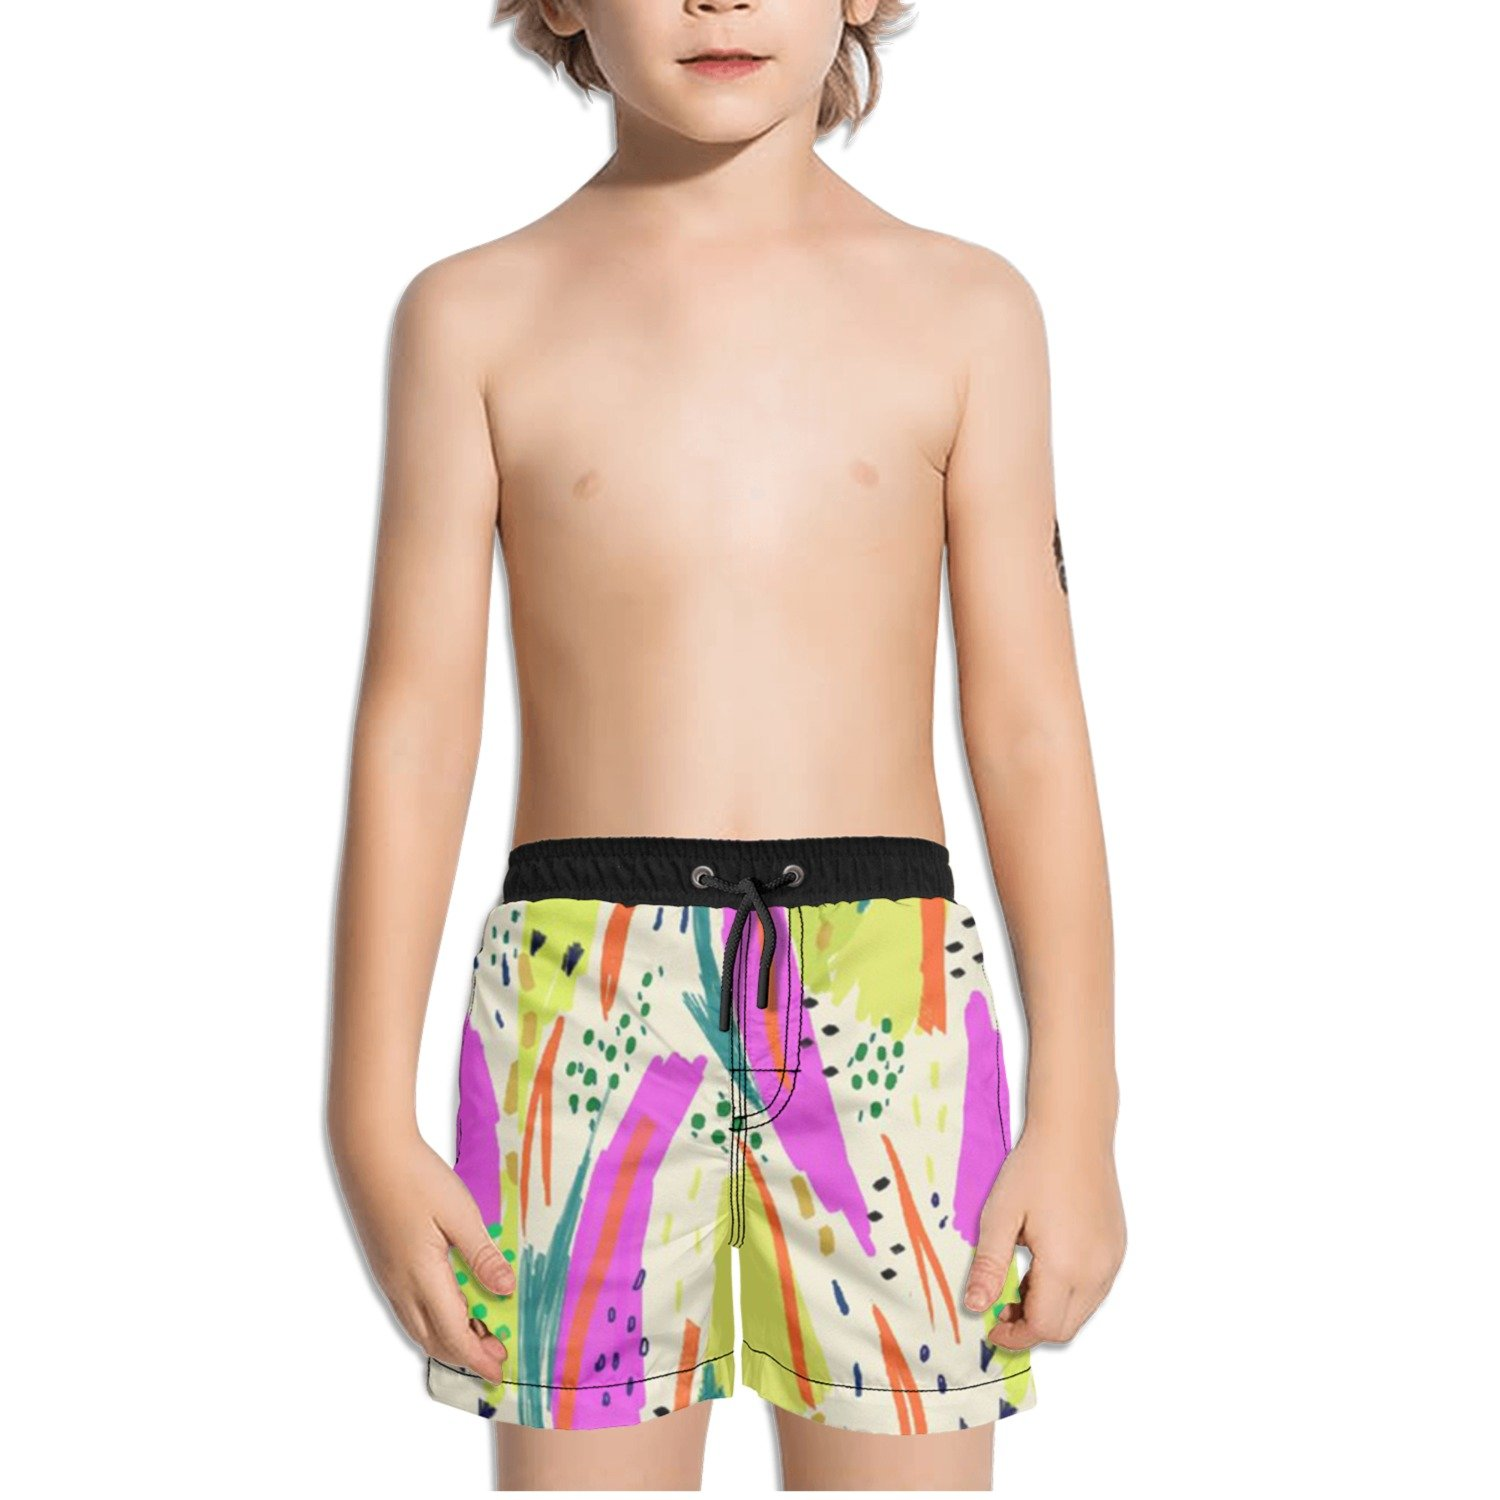 Ouxioaz Boys Swim Trunk Abstract Watercolor Art Beach Board Shorts